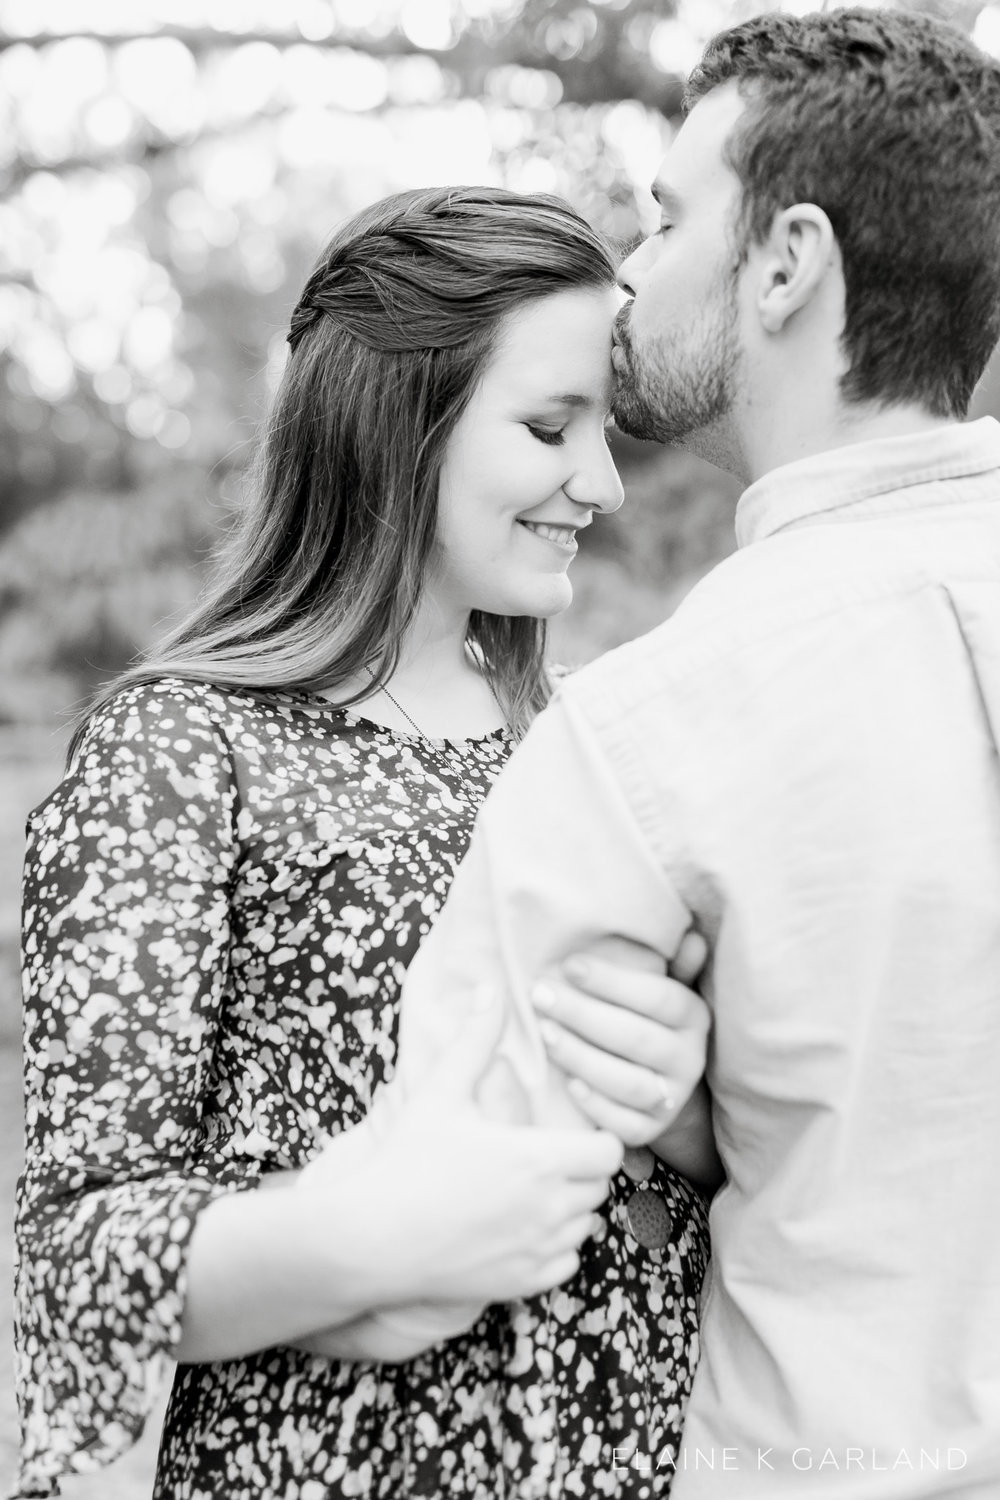 eagle-lake-park-engagement-session-22.jpg